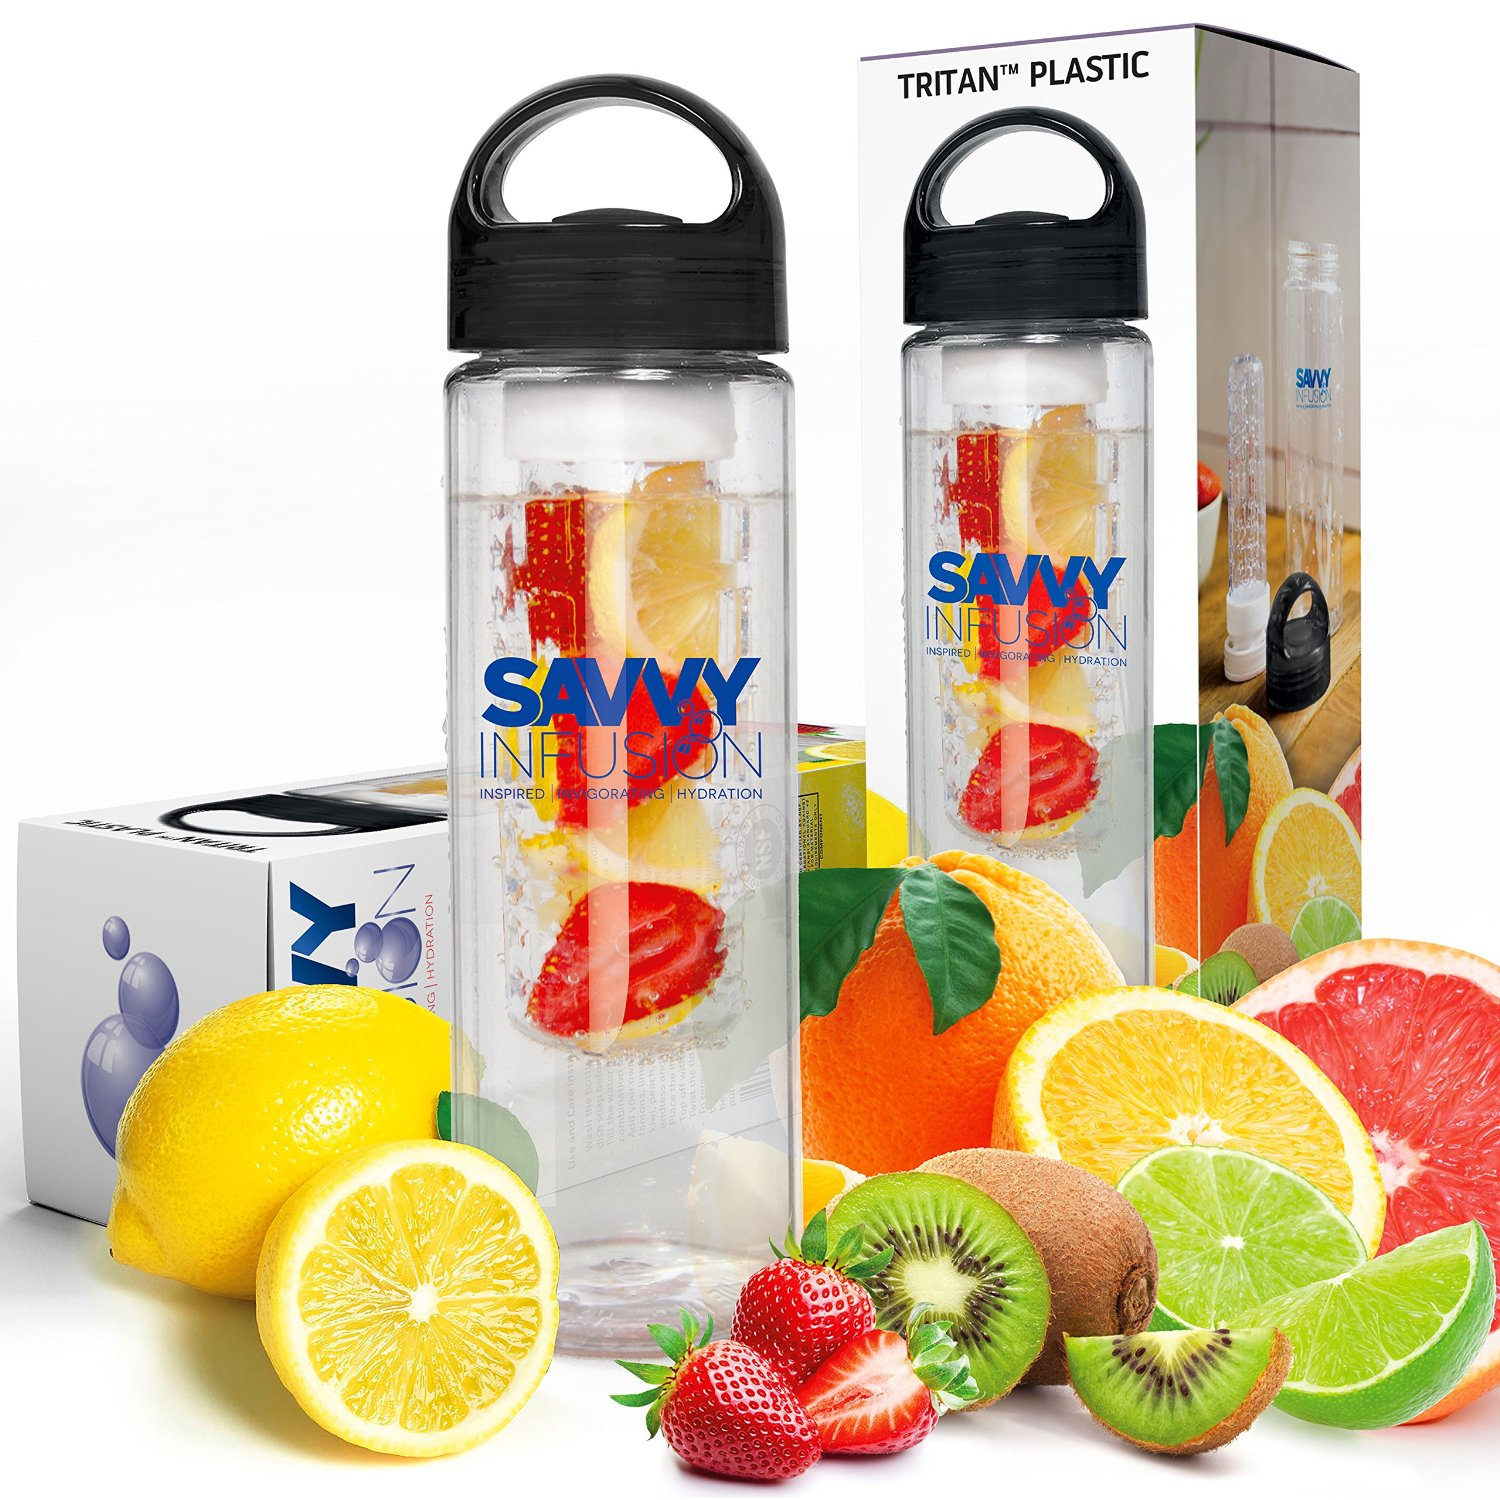 Hot Amazon Deal: Savvy Infusion Water Bottle – 24 Oz Only $12.95 (Reg. $28.95)